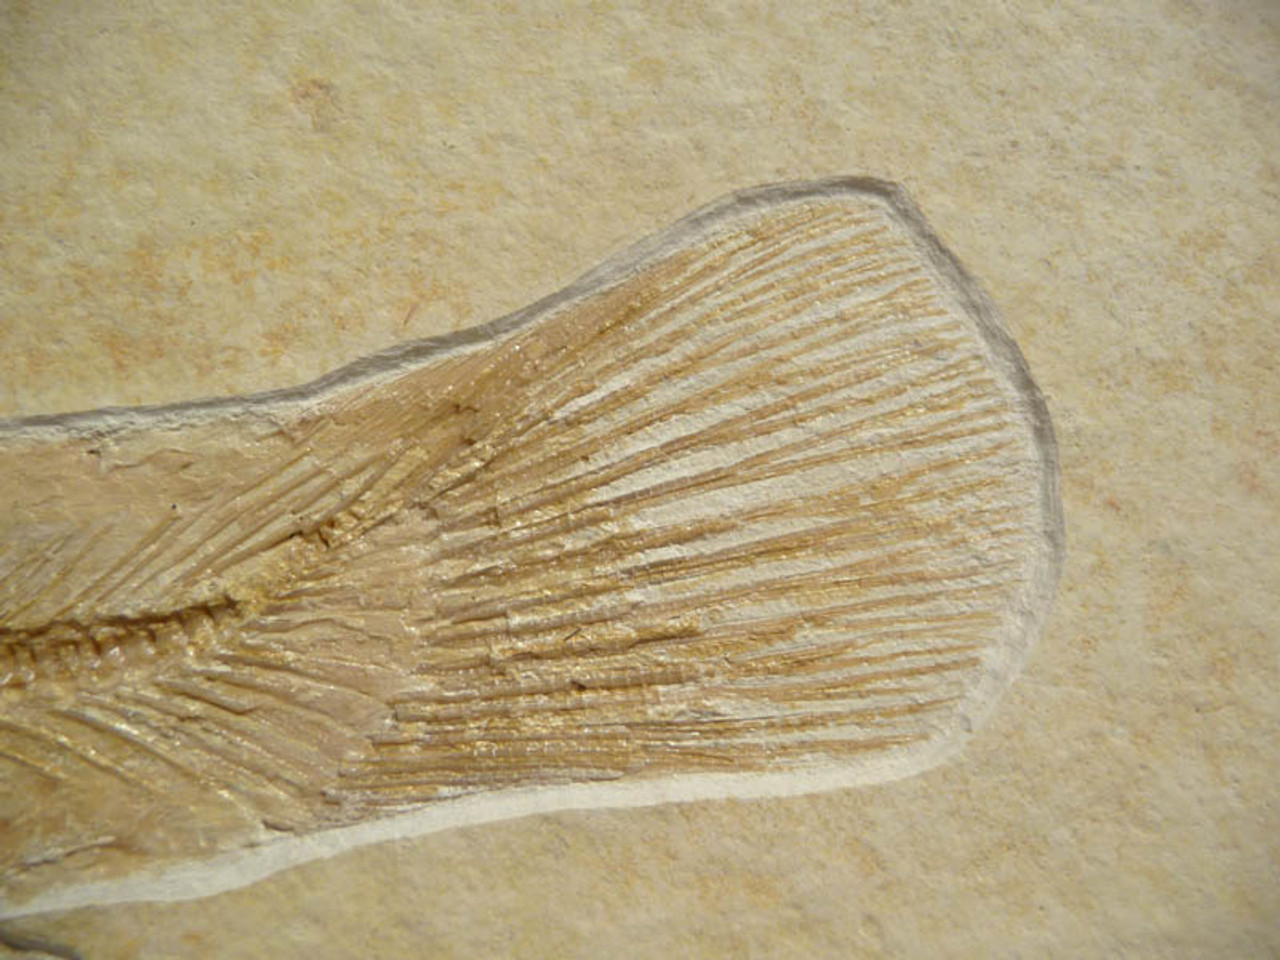 "F063 - INCREDIBLE NATURAL ""FISHING SCENE"" FISH FOSSIL FEATURING A  RARE JURASSIC BOWFIN FROM FAMOUS SOLNHOFEN DEPOSITS"